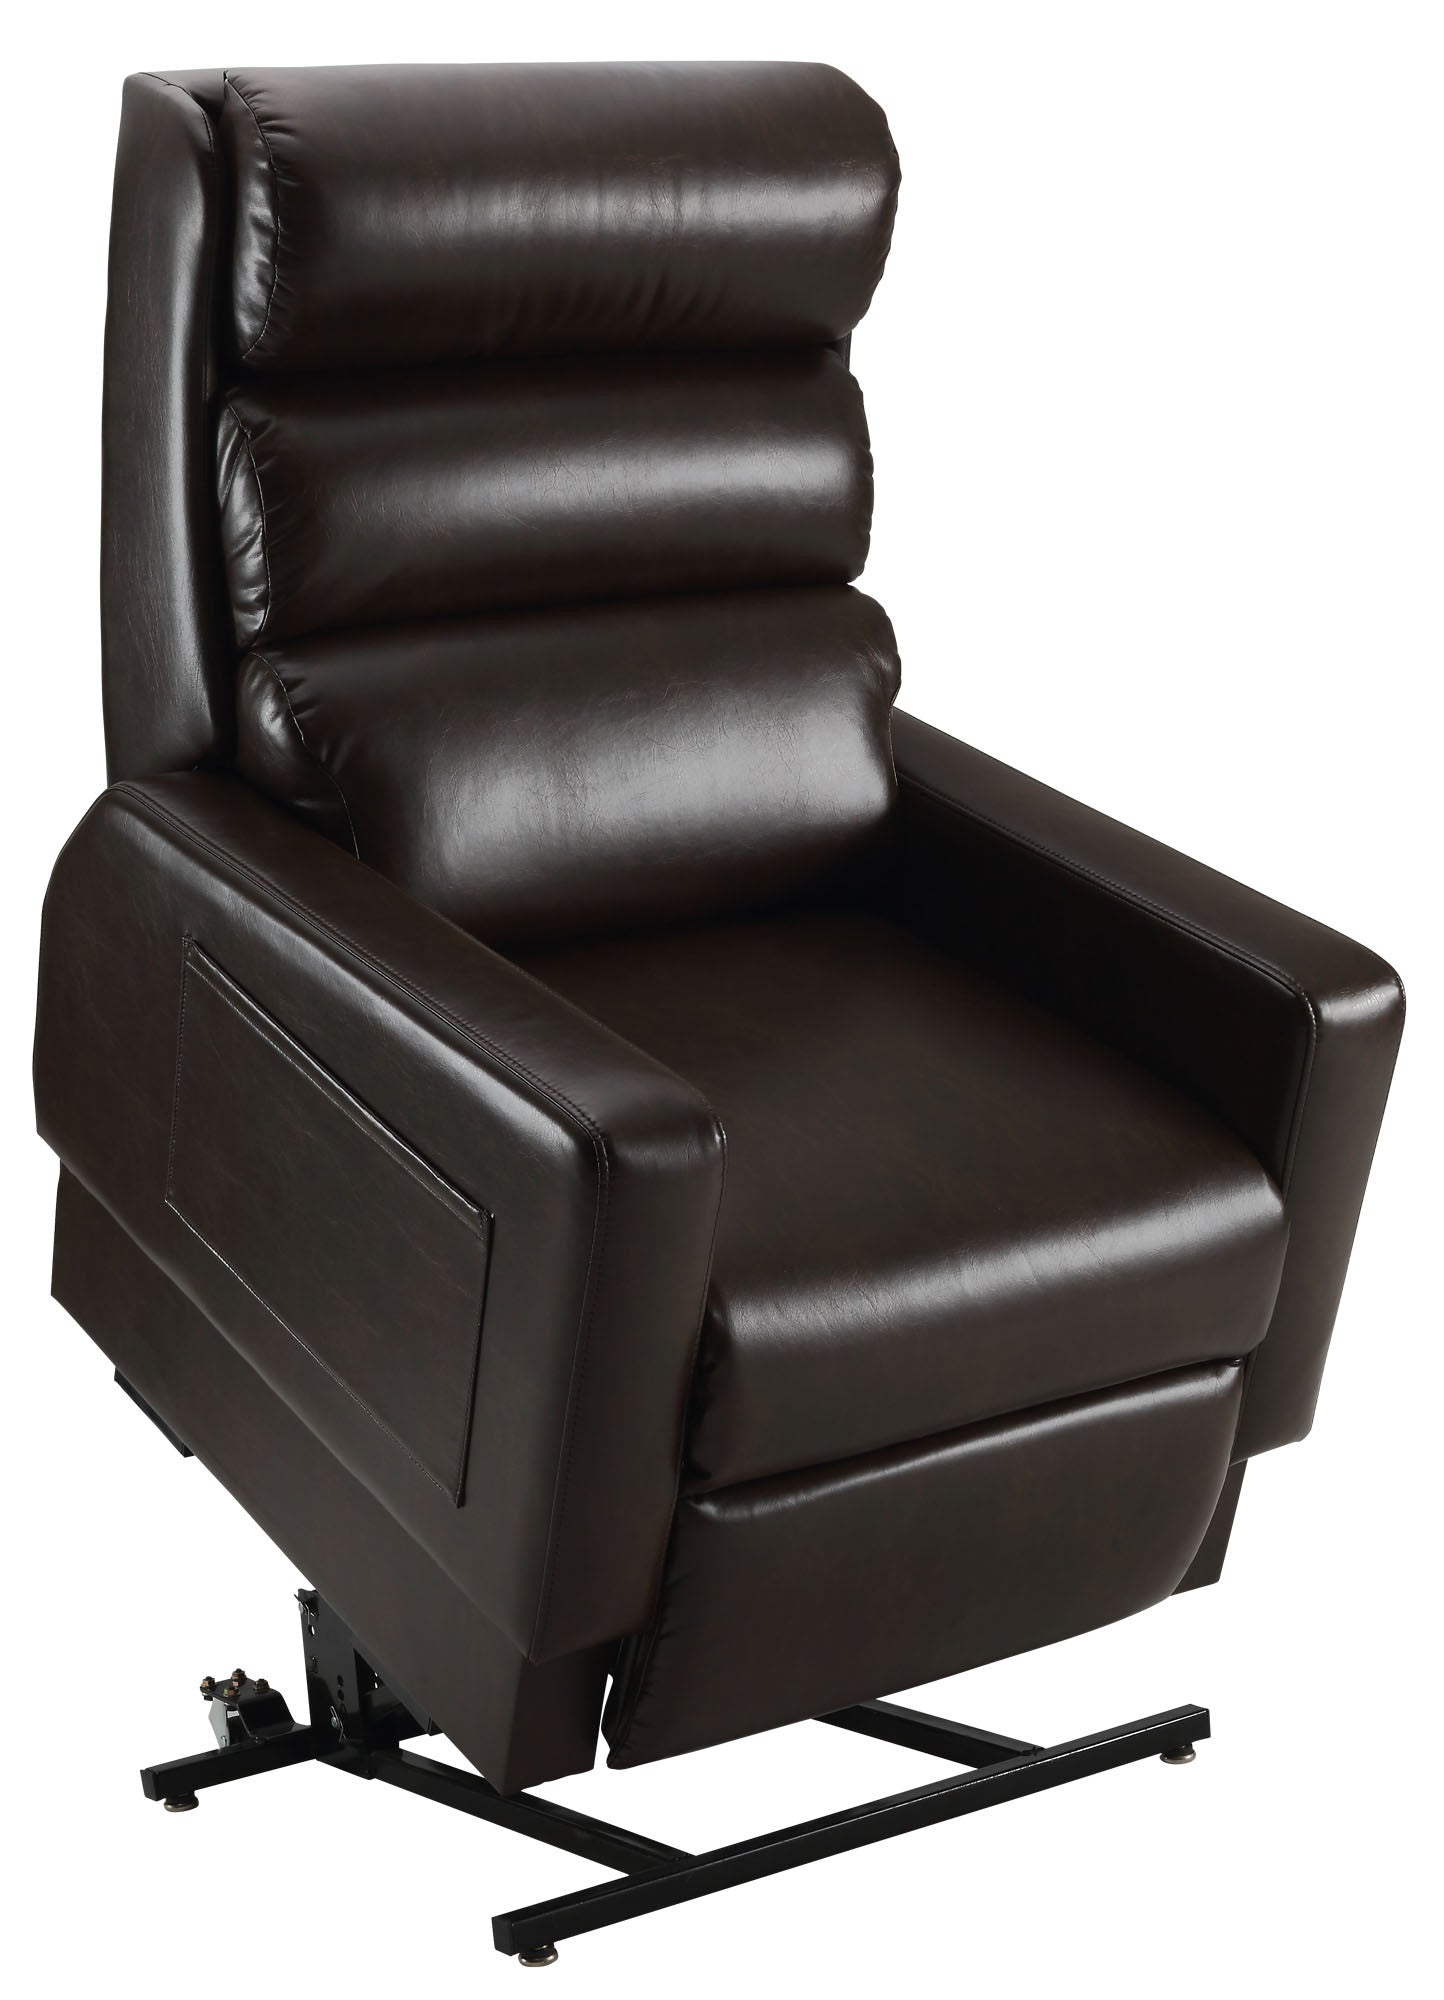 Mc520 Lift Recliner Chairs Stand Assist Recliner